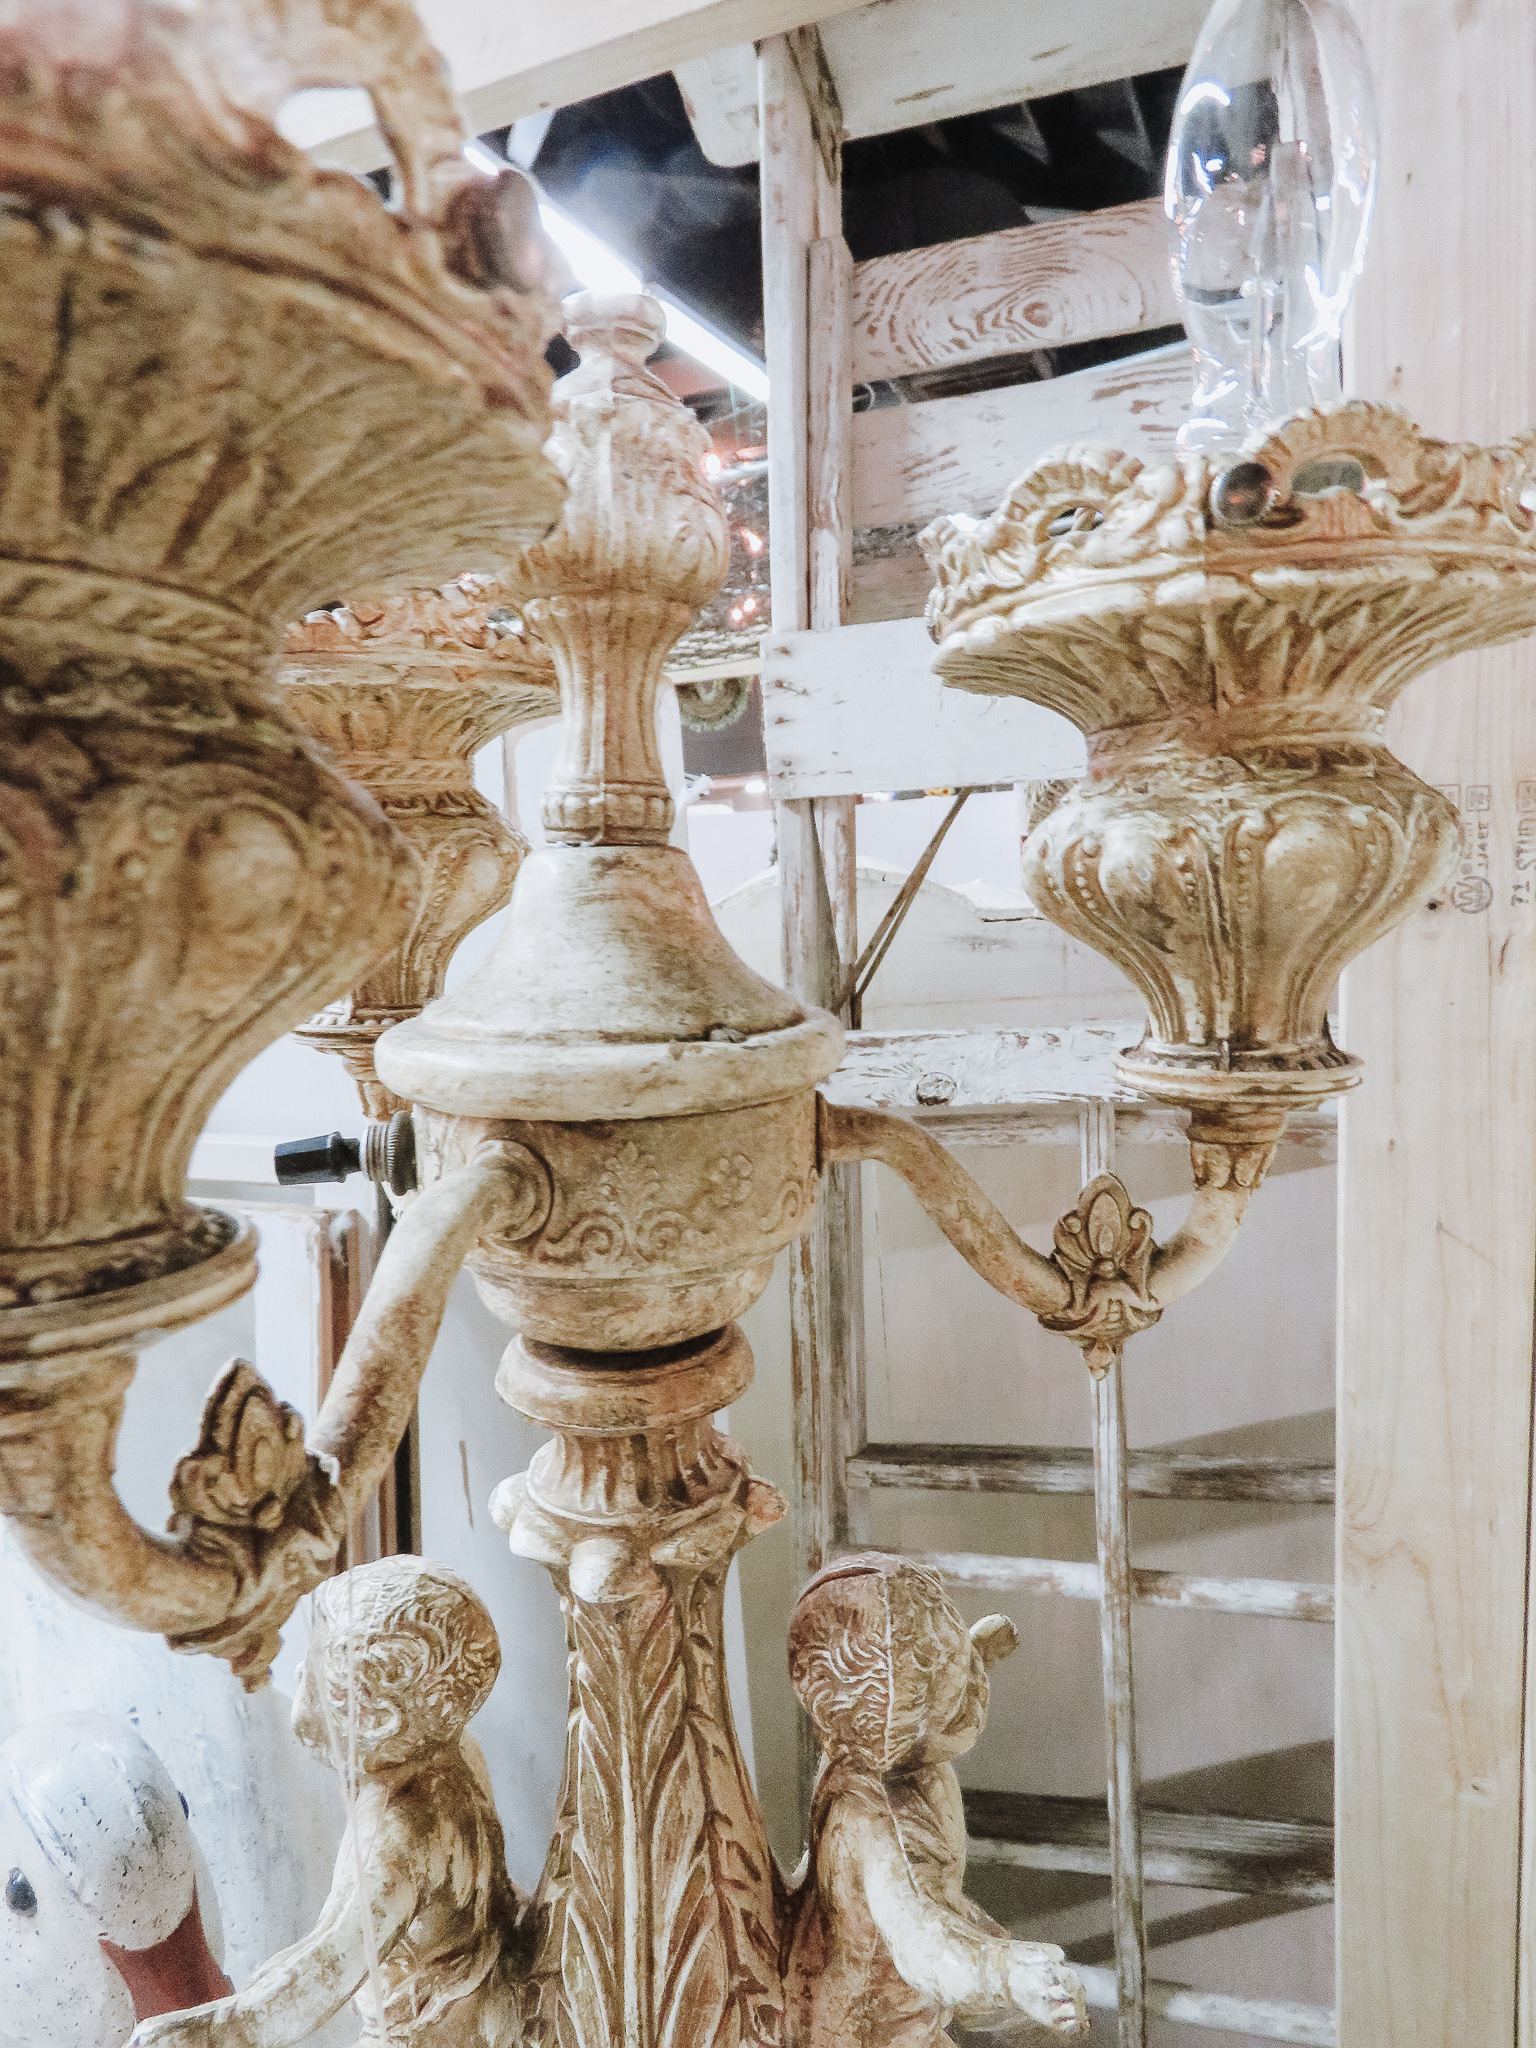 Candelabra - Vintage lighted candelabras will give you more lighting than your traditional lamp, and they come in a wide variety of shapes and sizes.